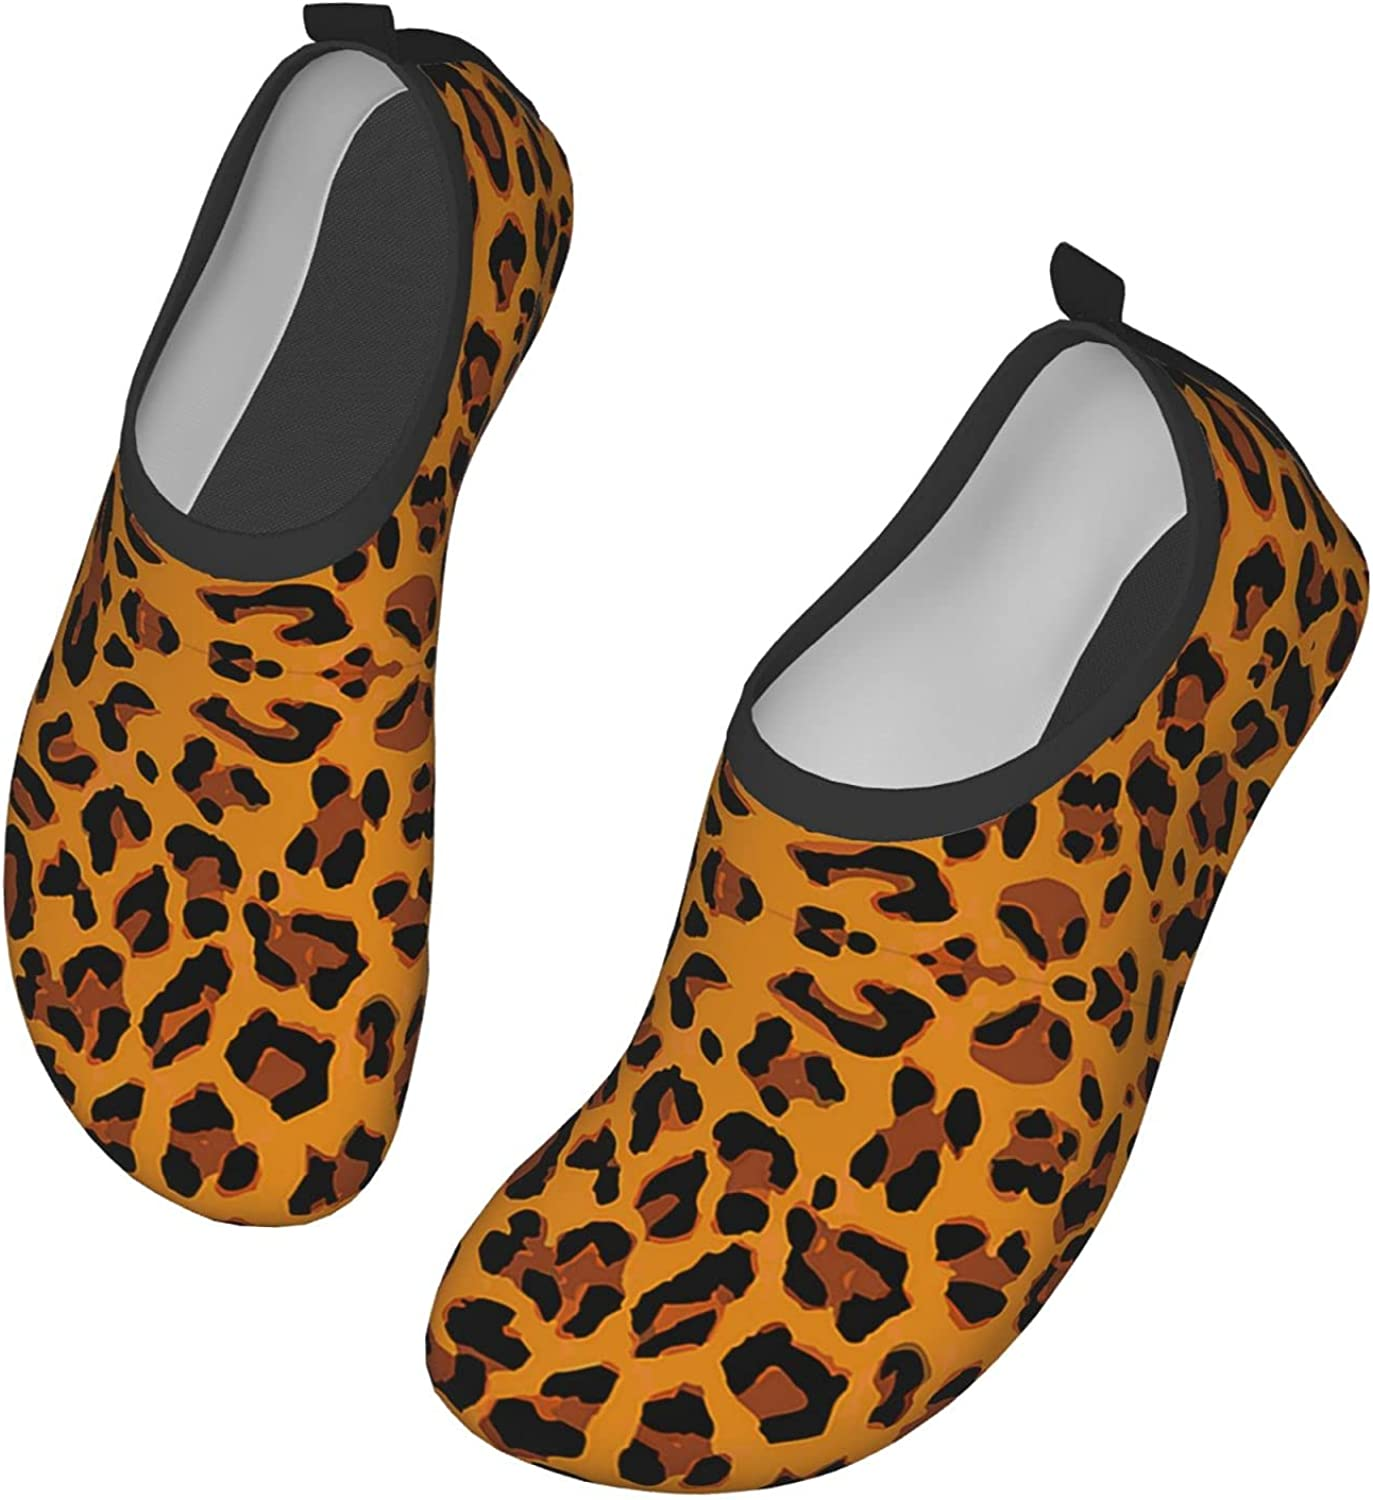 VEIMER Max 40% OFF Leopard Fashion Water Shoes Beach Quick-Dry Non- online shopping Barefoot